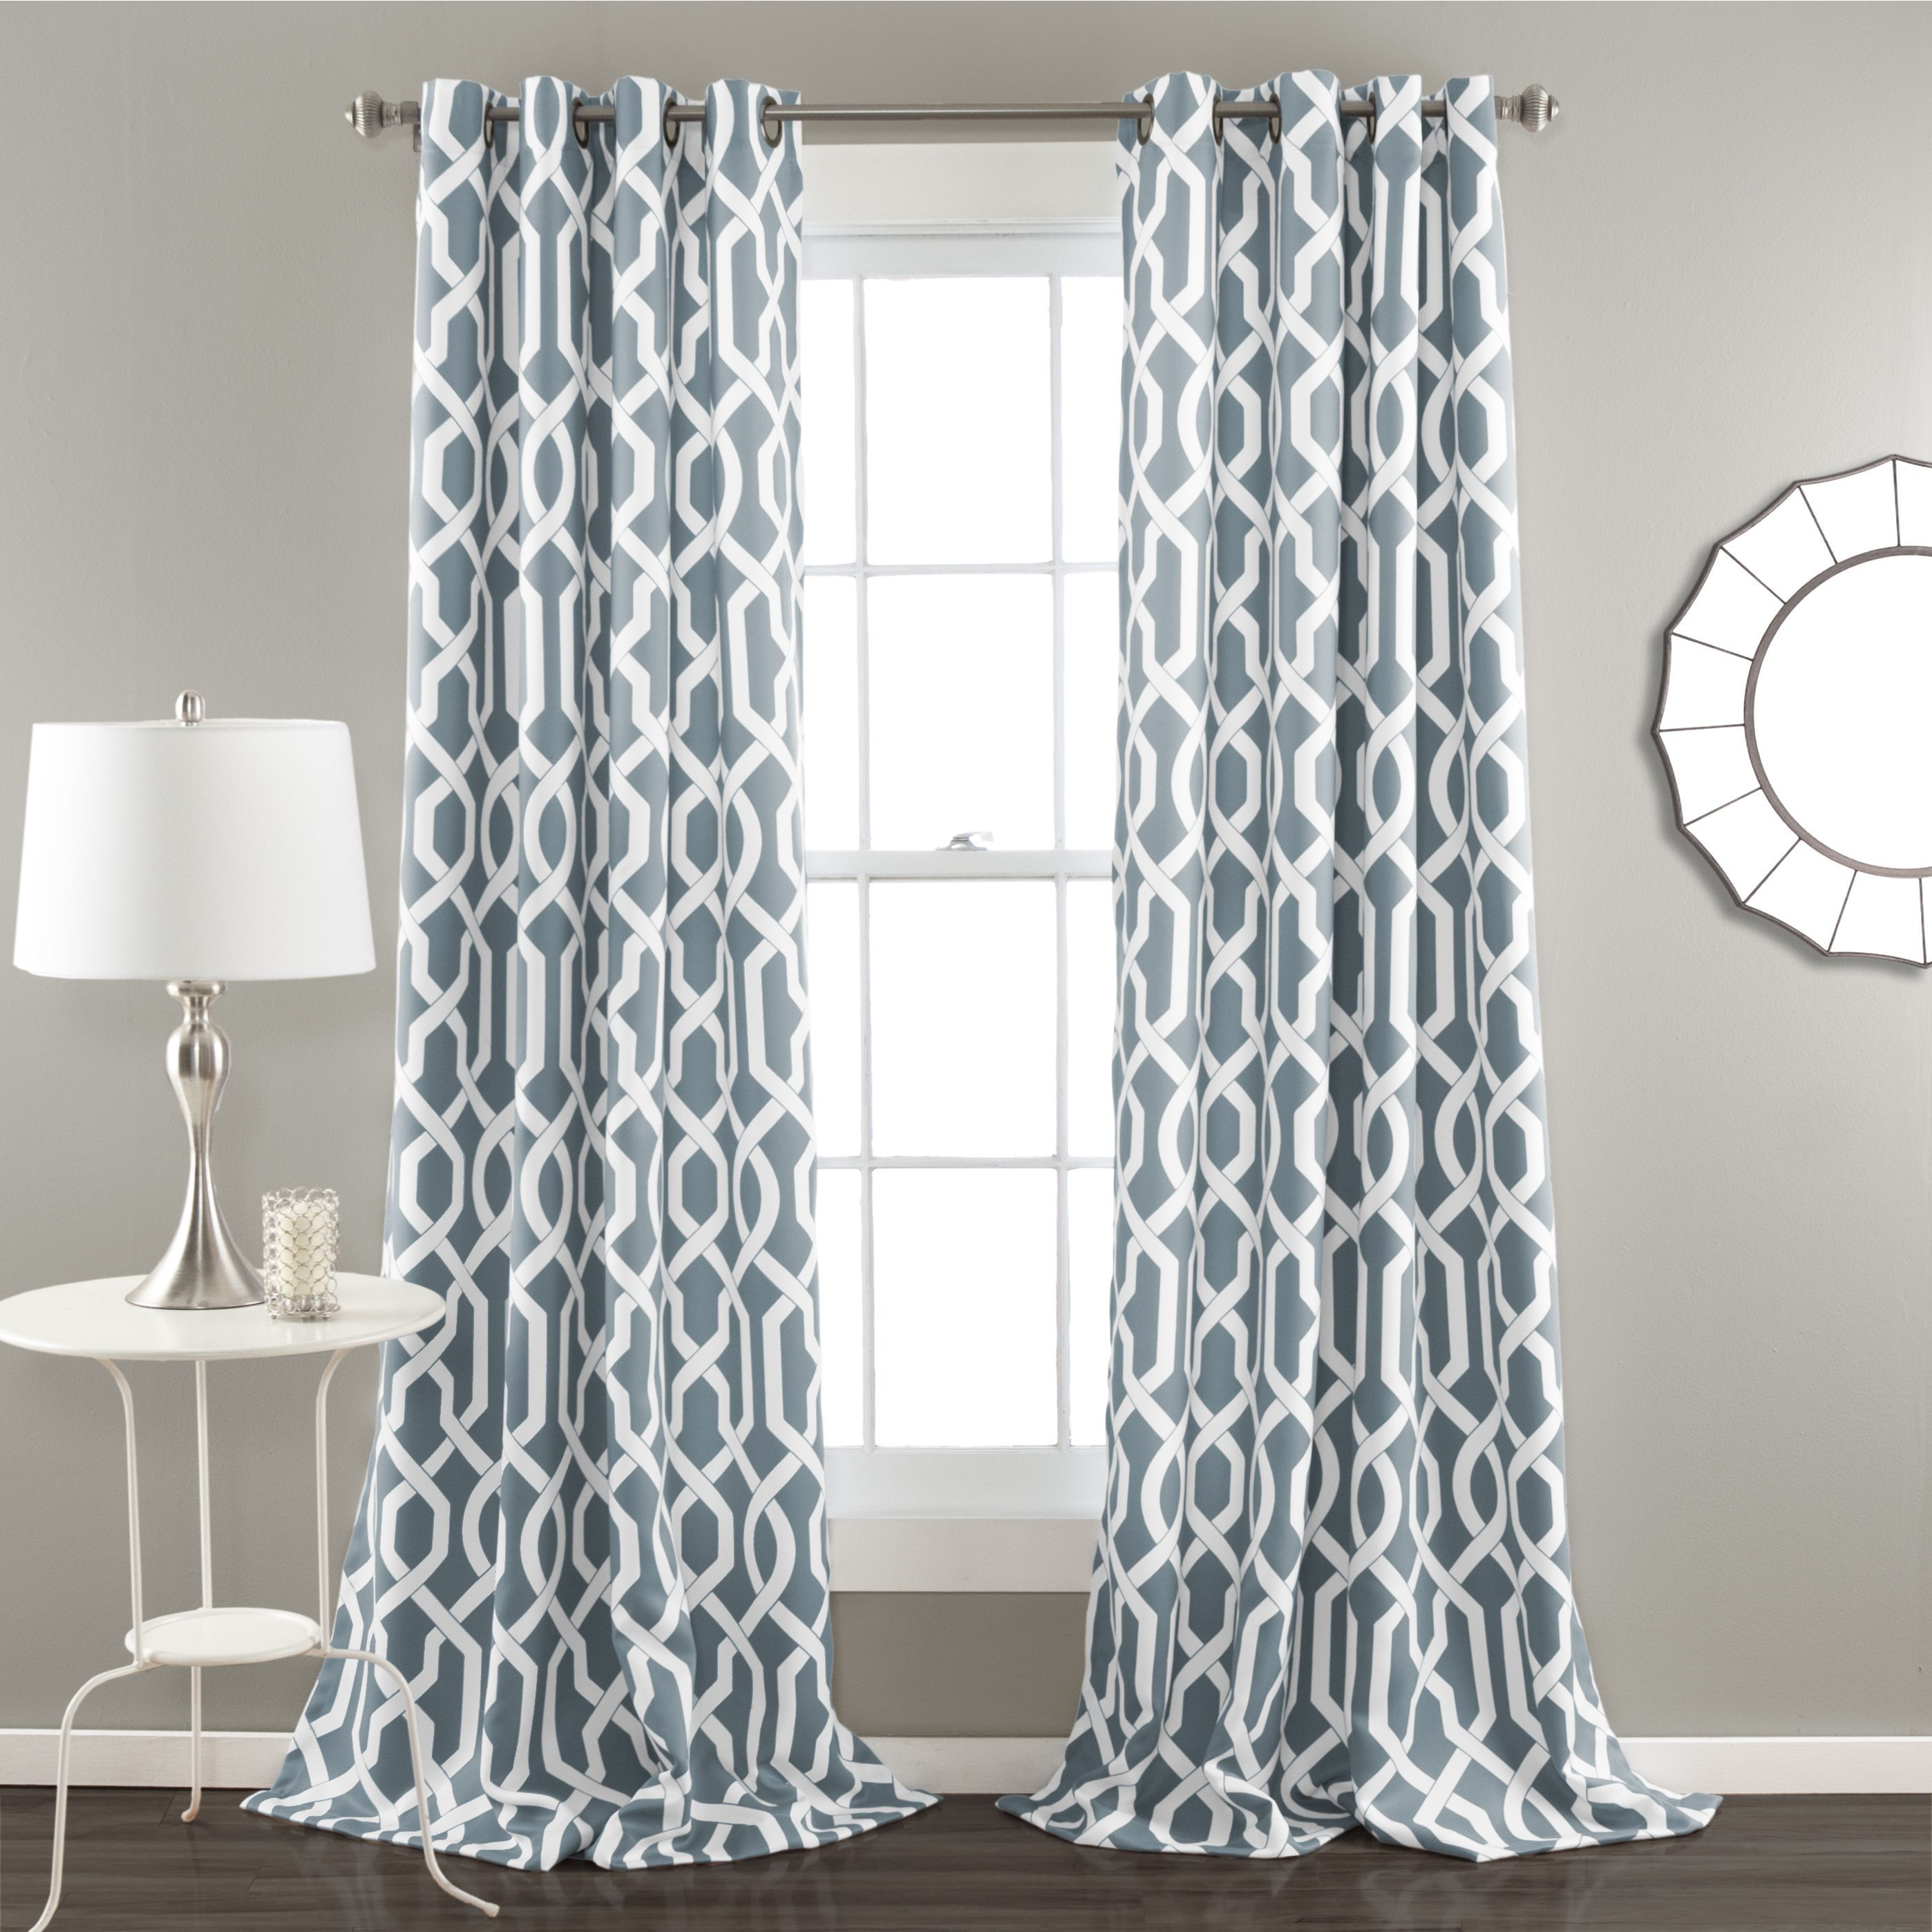 astounding room curtains awesomeiving and contemporary images design paisley beautiful emejing with living cream formal valances windows ideas forng blue category sears pictures drapes